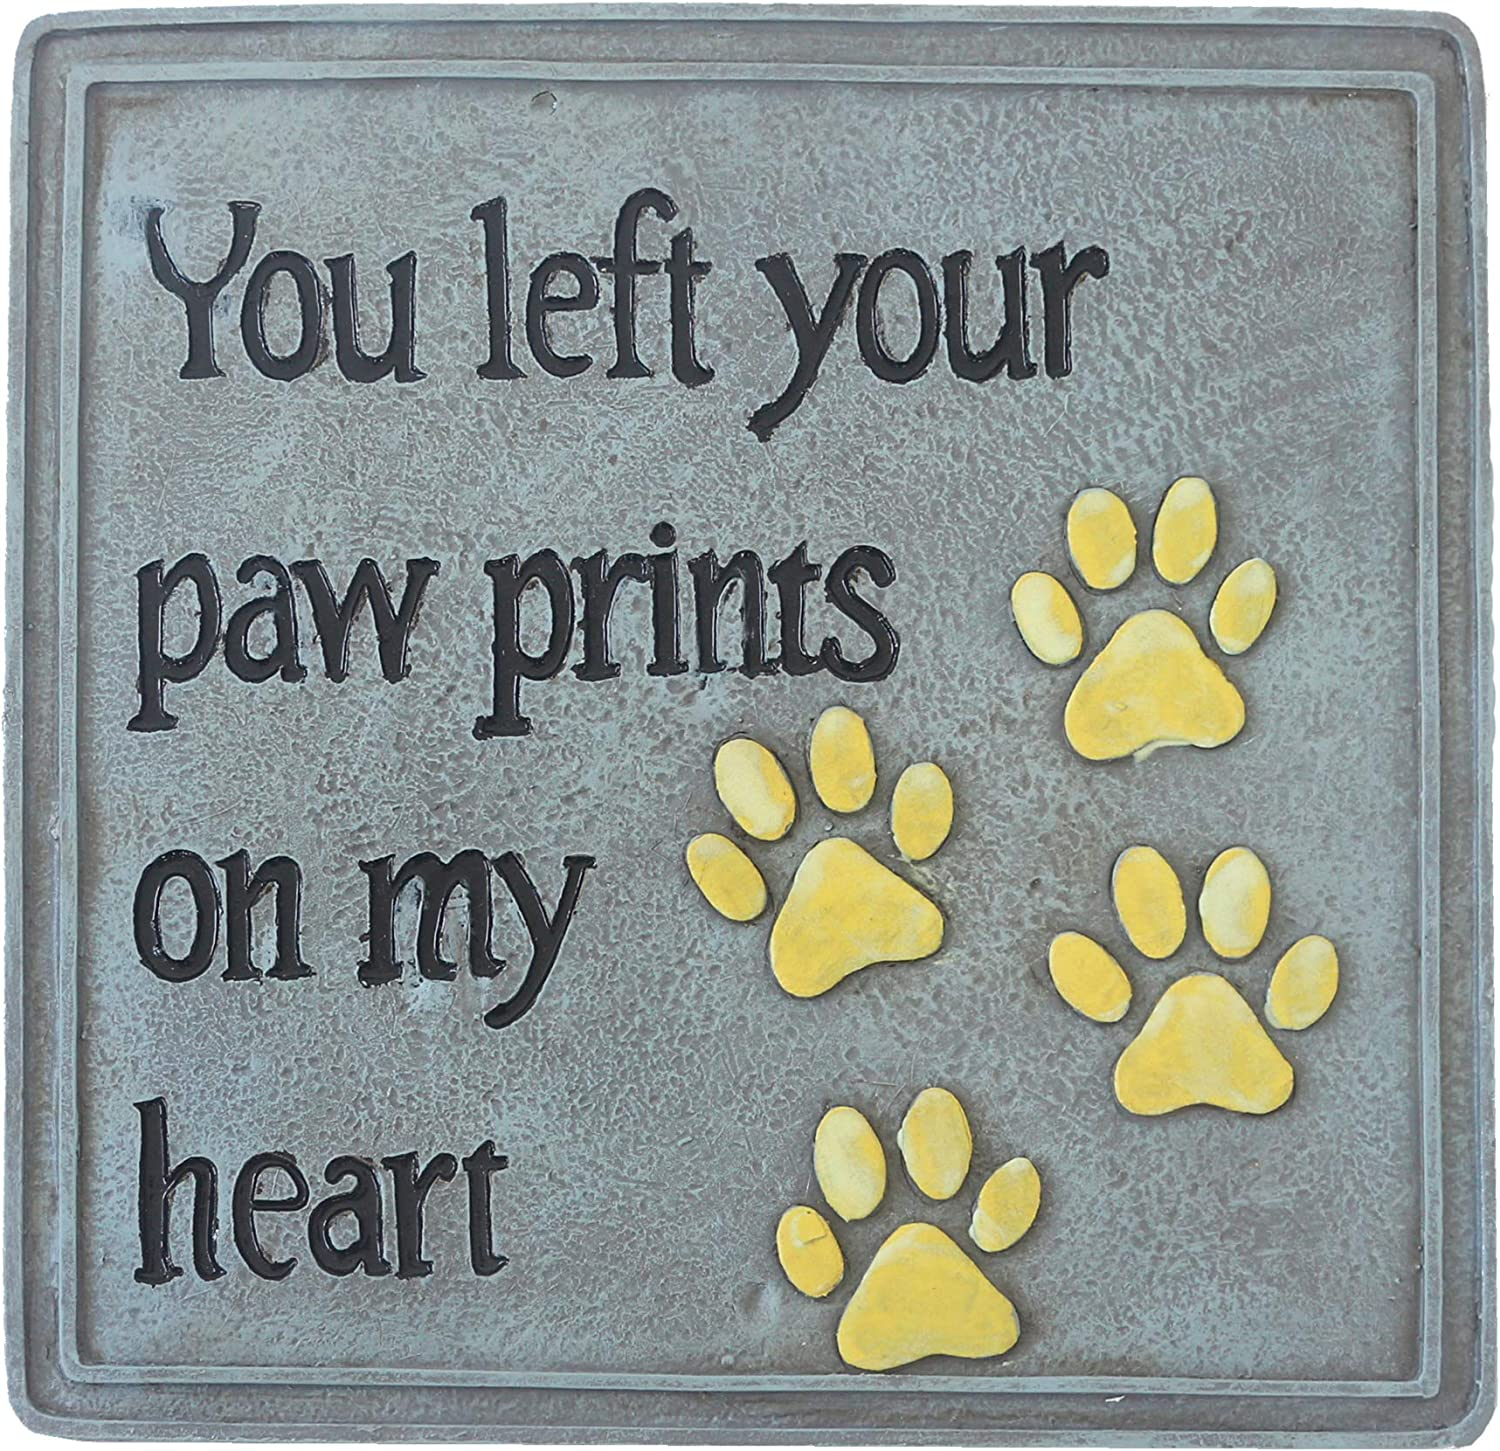 Qingbei Rina Aflowa Pet Memorial Stepping Stone with Paw Print Outdoor Resin Garden Stone Dog Loss Sympathy Gift Remembrance Plaque